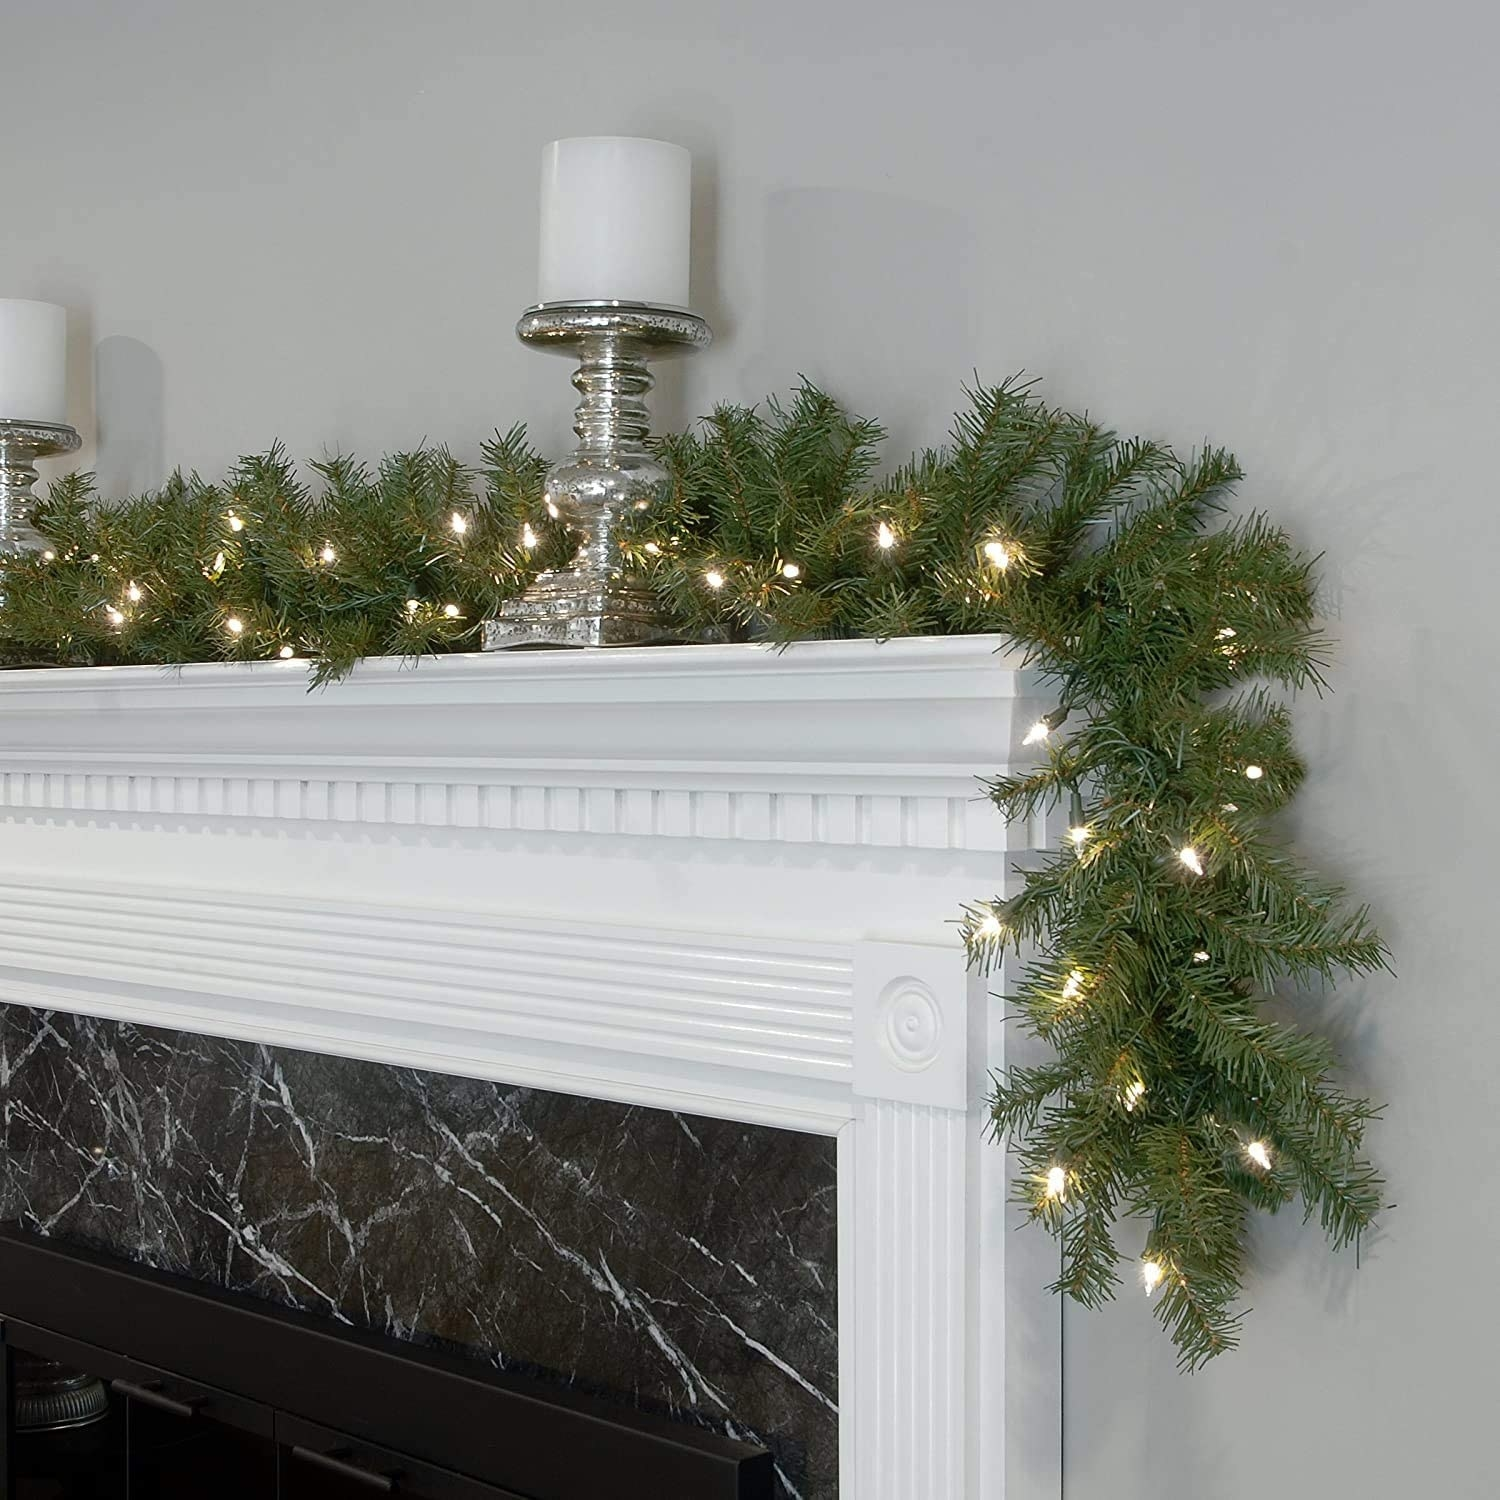 A close up of a pre-lit garland draped over a fireplace mantlepiece